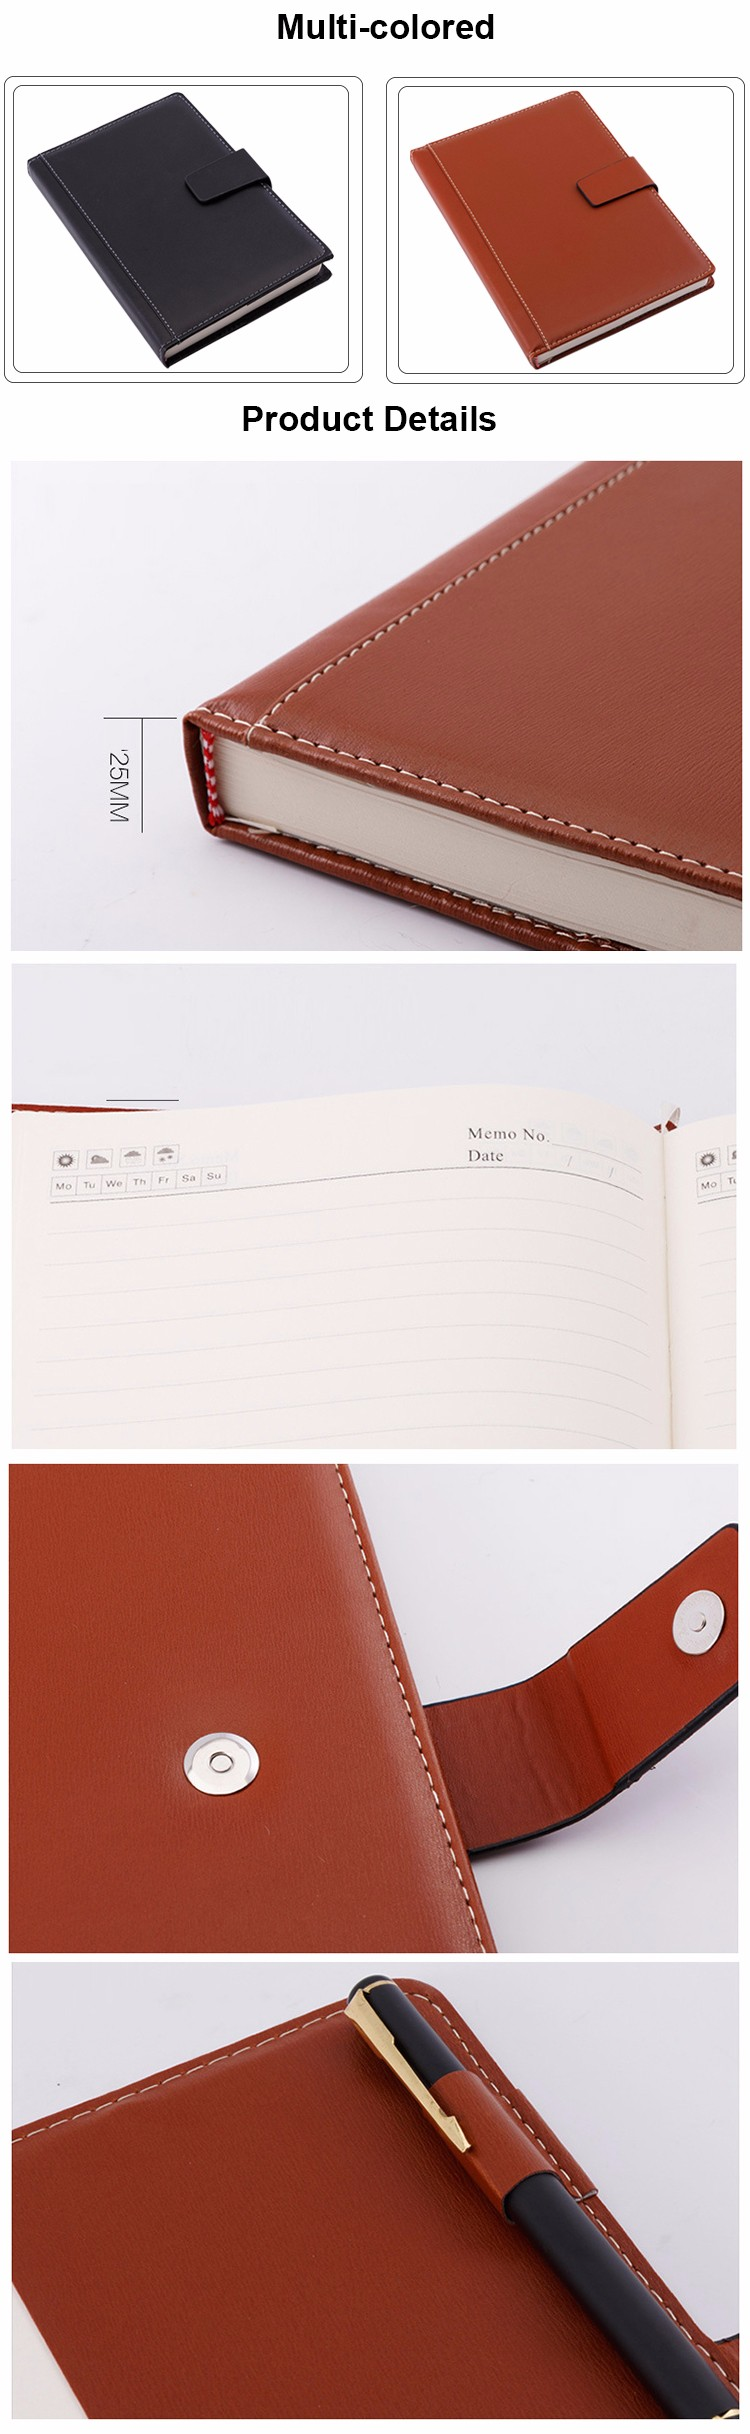 Promotional paper leather cover notebook kraft cover perfect binding diary note book hardcover notebook as birthday gift